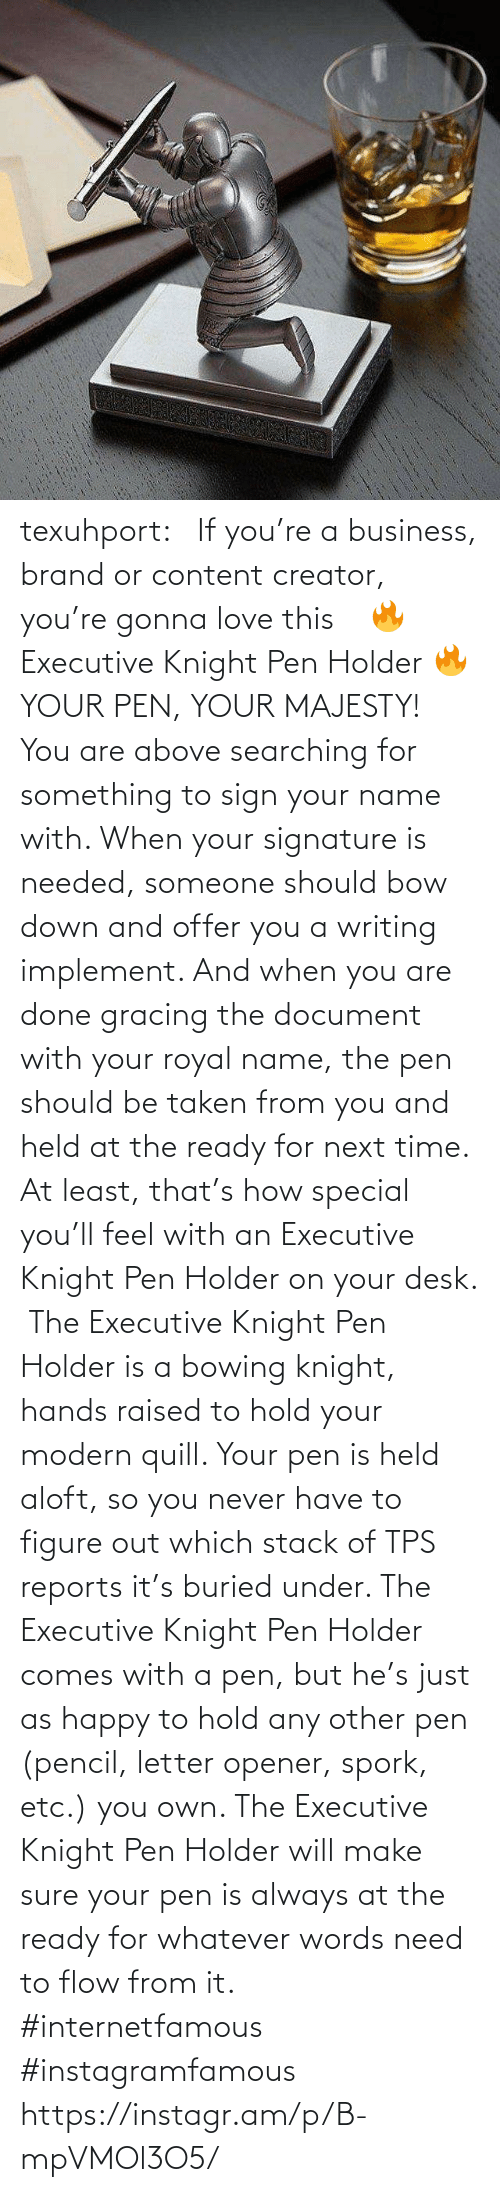 tps: texuhport:⎆ If you're a business, brand or content creator, you're gonna love this ⎆⁣ 🔥 Executive Knight Pen Holder 🔥⁣ YOUR PEN, YOUR MAJESTY!⁣ ⁣ You are above searching for something to sign your name with. When your signature is needed, someone should bow down and offer you a writing implement. And when you are done gracing the document with your royal name, the pen should be taken from you and held at the ready for next time. At least, that's how special you'll feel with an Executive Knight Pen Holder on your desk.⁣ ⁣ The Executive Knight Pen Holder is a bowing knight, hands raised to hold your modern quill. Your pen is held aloft, so you never have to figure out which stack of TPS reports it's buried under. The Executive Knight Pen Holder comes with a pen, but he's just as happy to hold any other pen (pencil, letter opener, spork, etc.) you own. The Executive Knight Pen Holder will make sure your pen is always at the ready for whatever words need to flow from it.⁣ #internetfamous  #instagramfamous https://instagr.am/p/B-mpVMOl3O5/